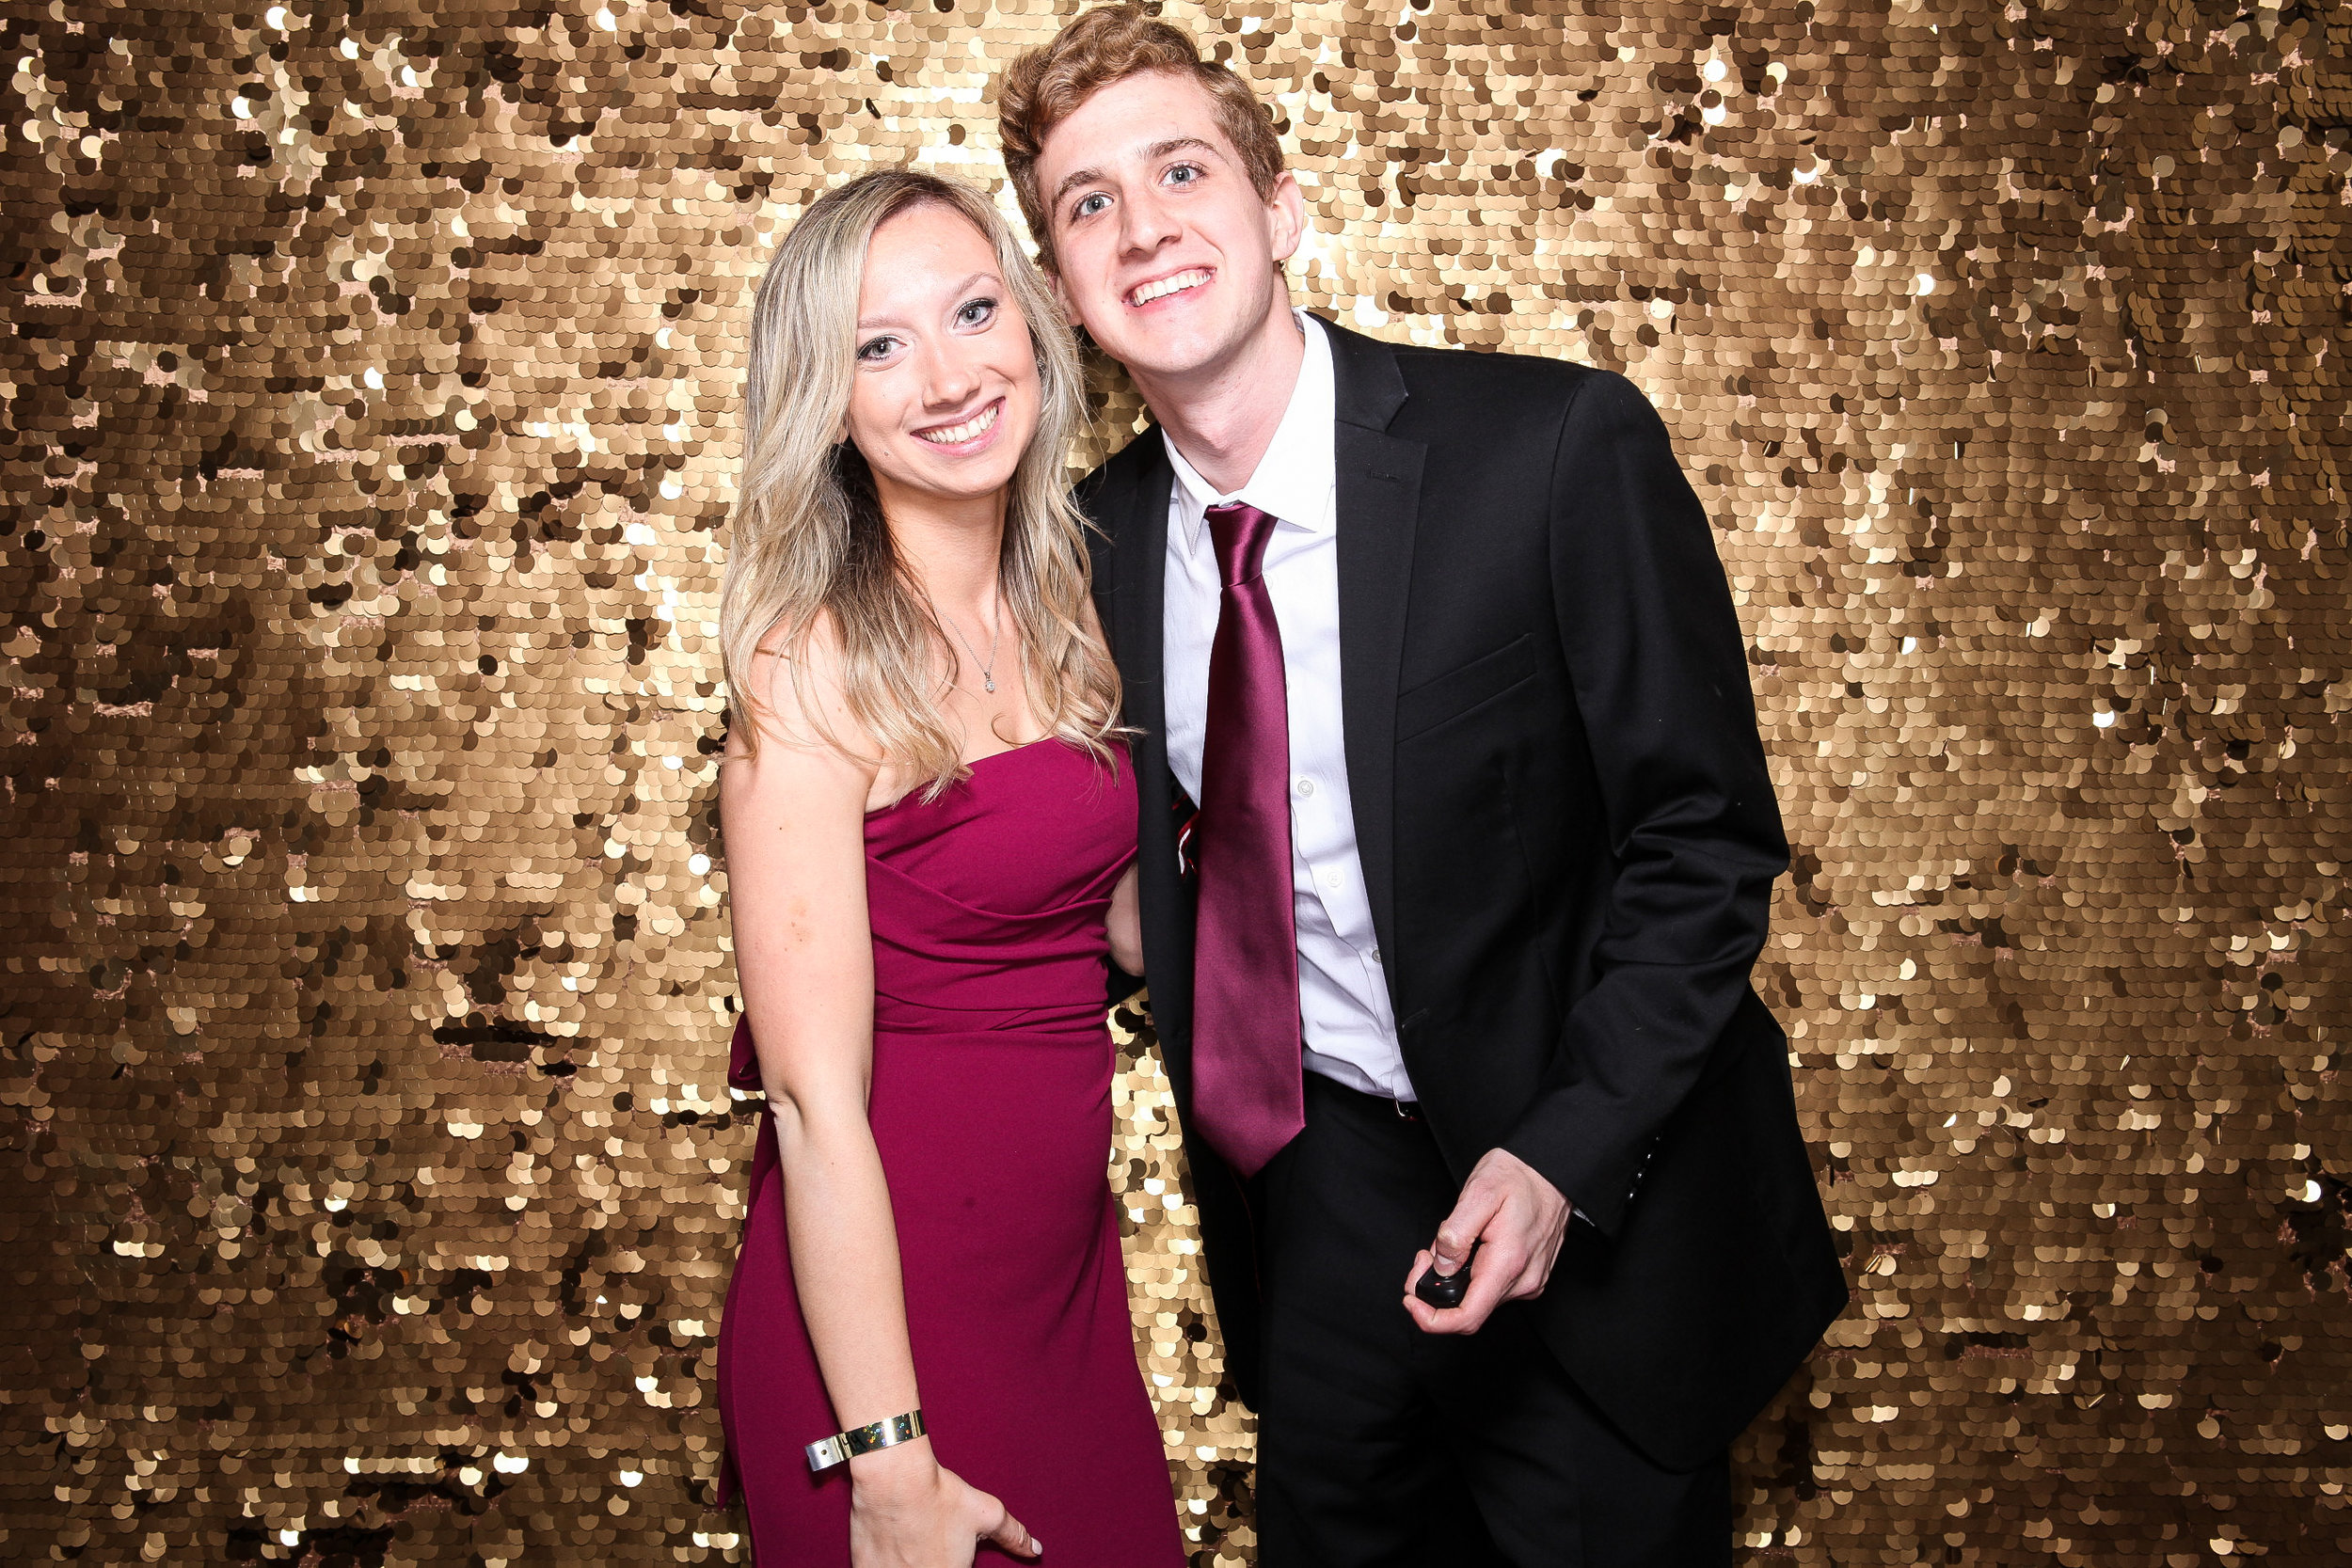 20190503_Adelphi_Senior_Formal-032.jpg